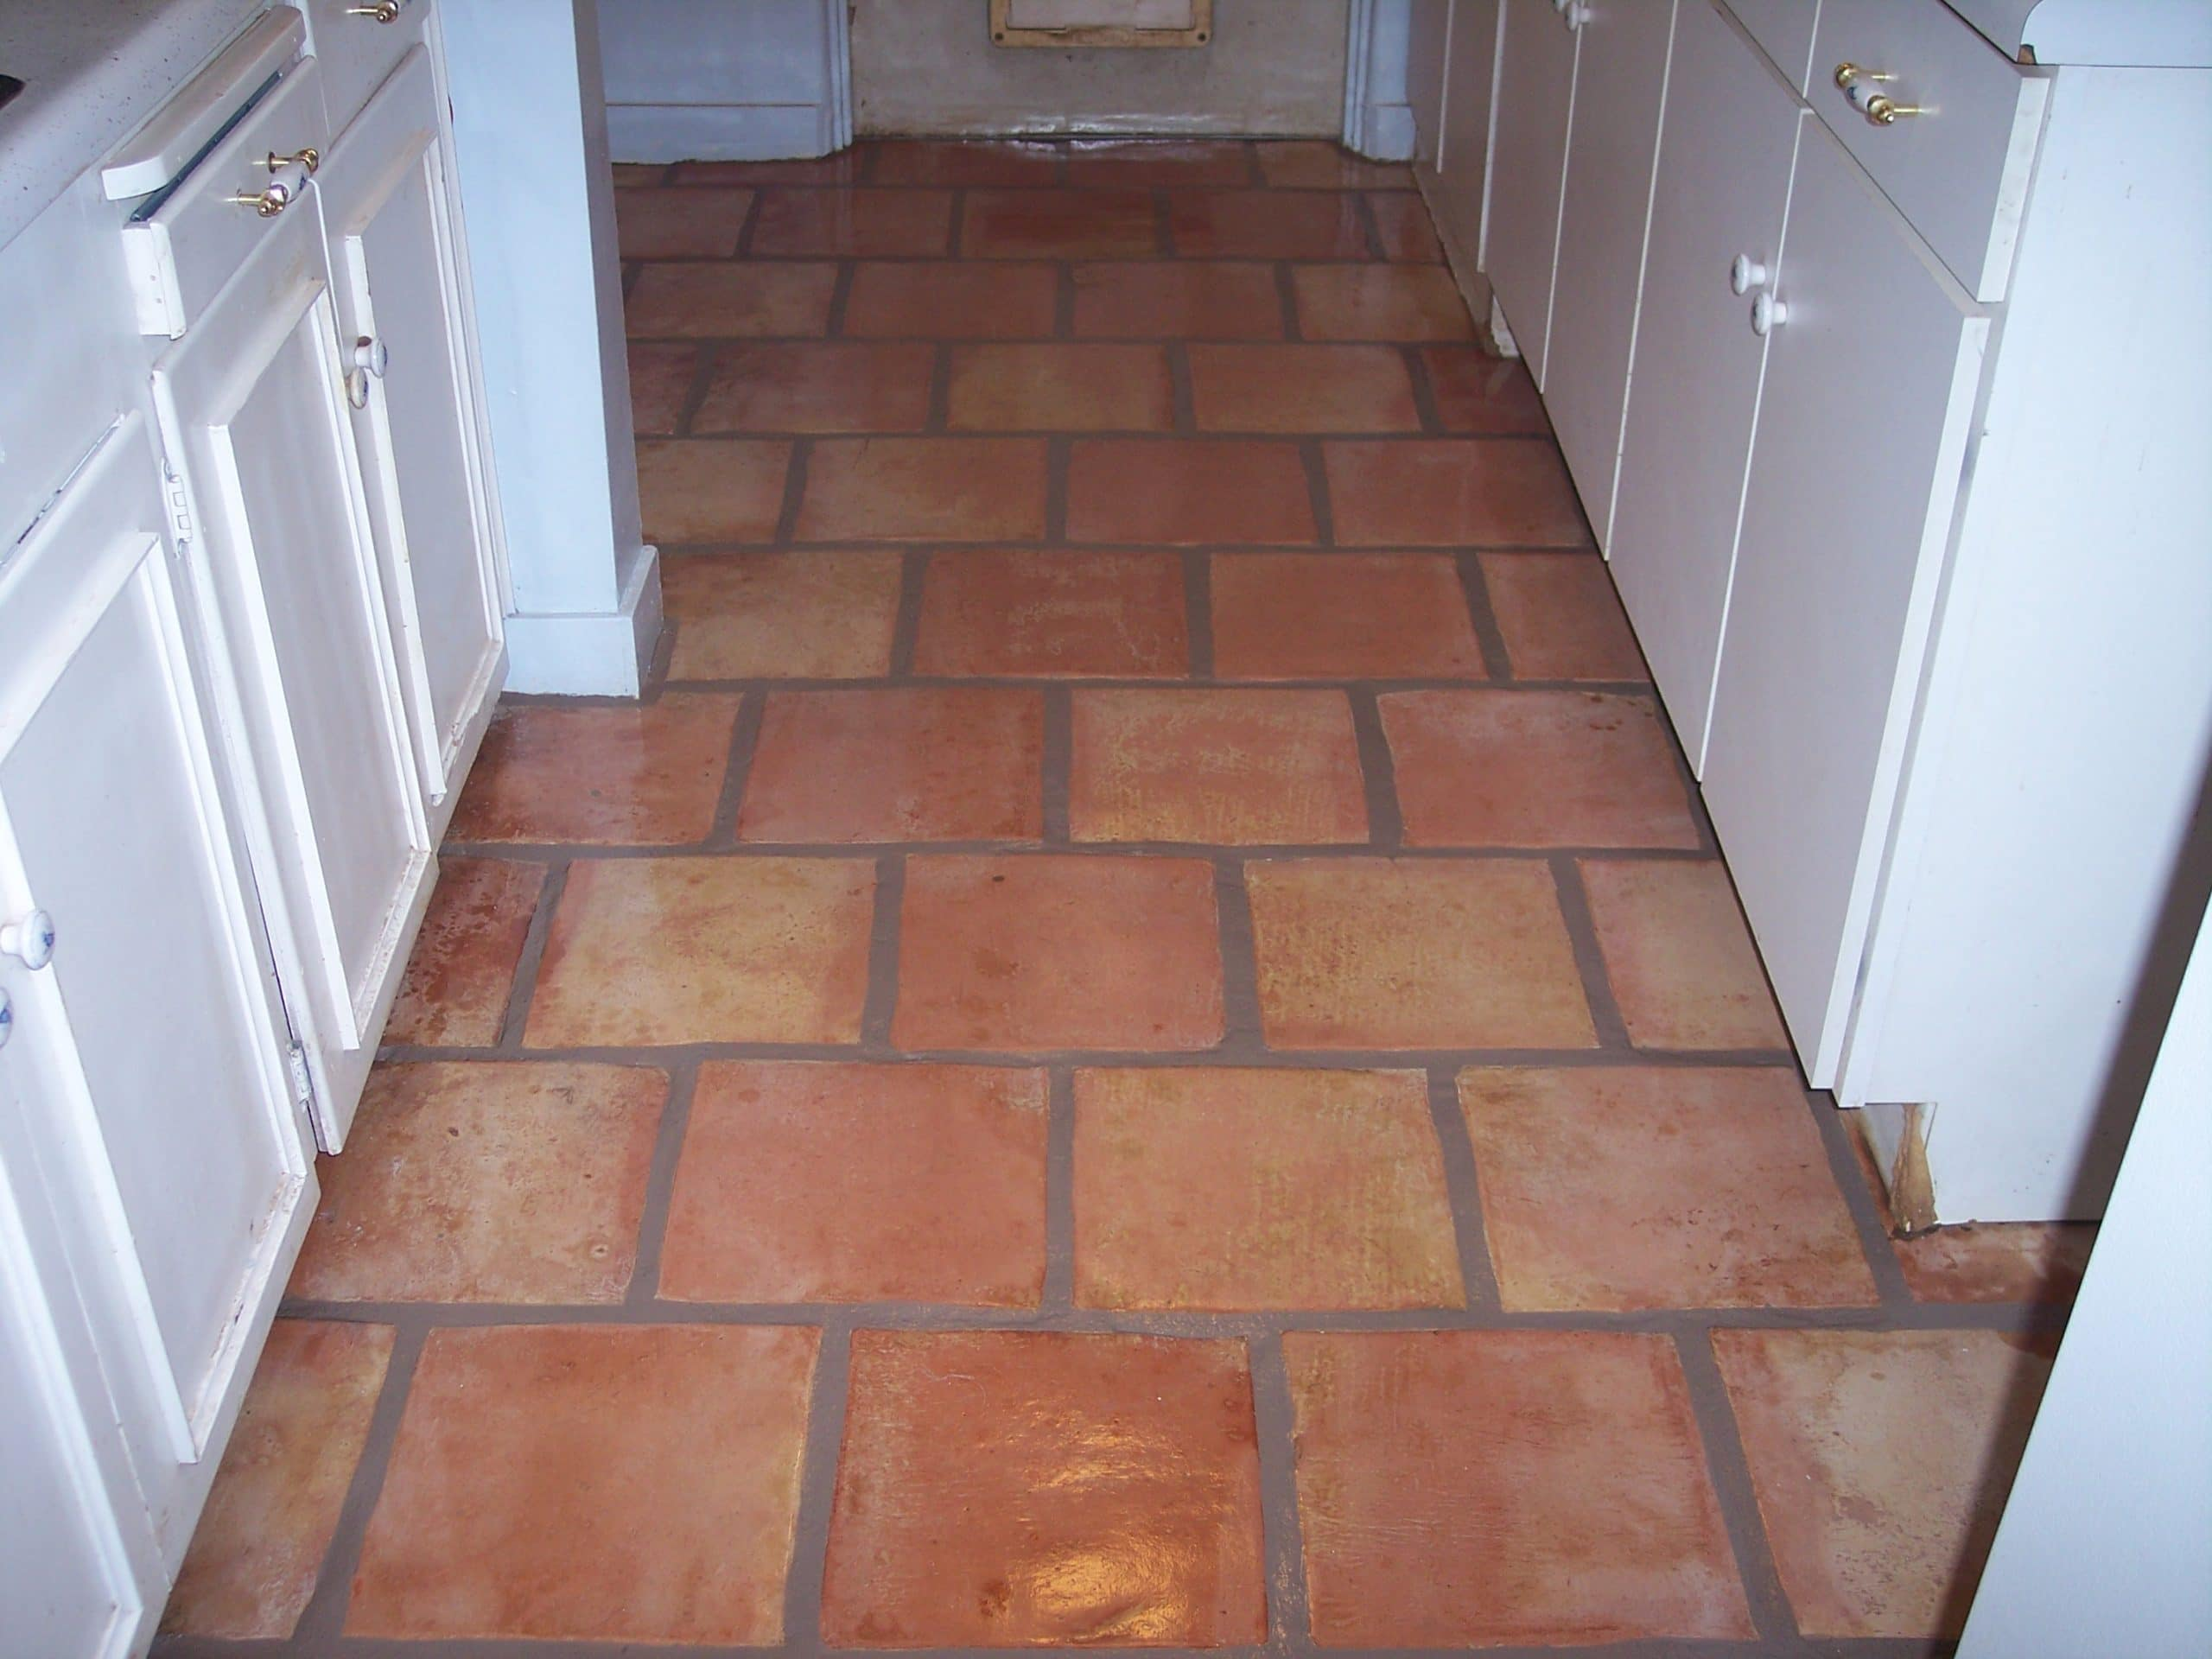 Mexican tile cleaning desert tile grout care restored mexican saltillo tile kitchen floor in scottsdale arizona home dailygadgetfo Gallery